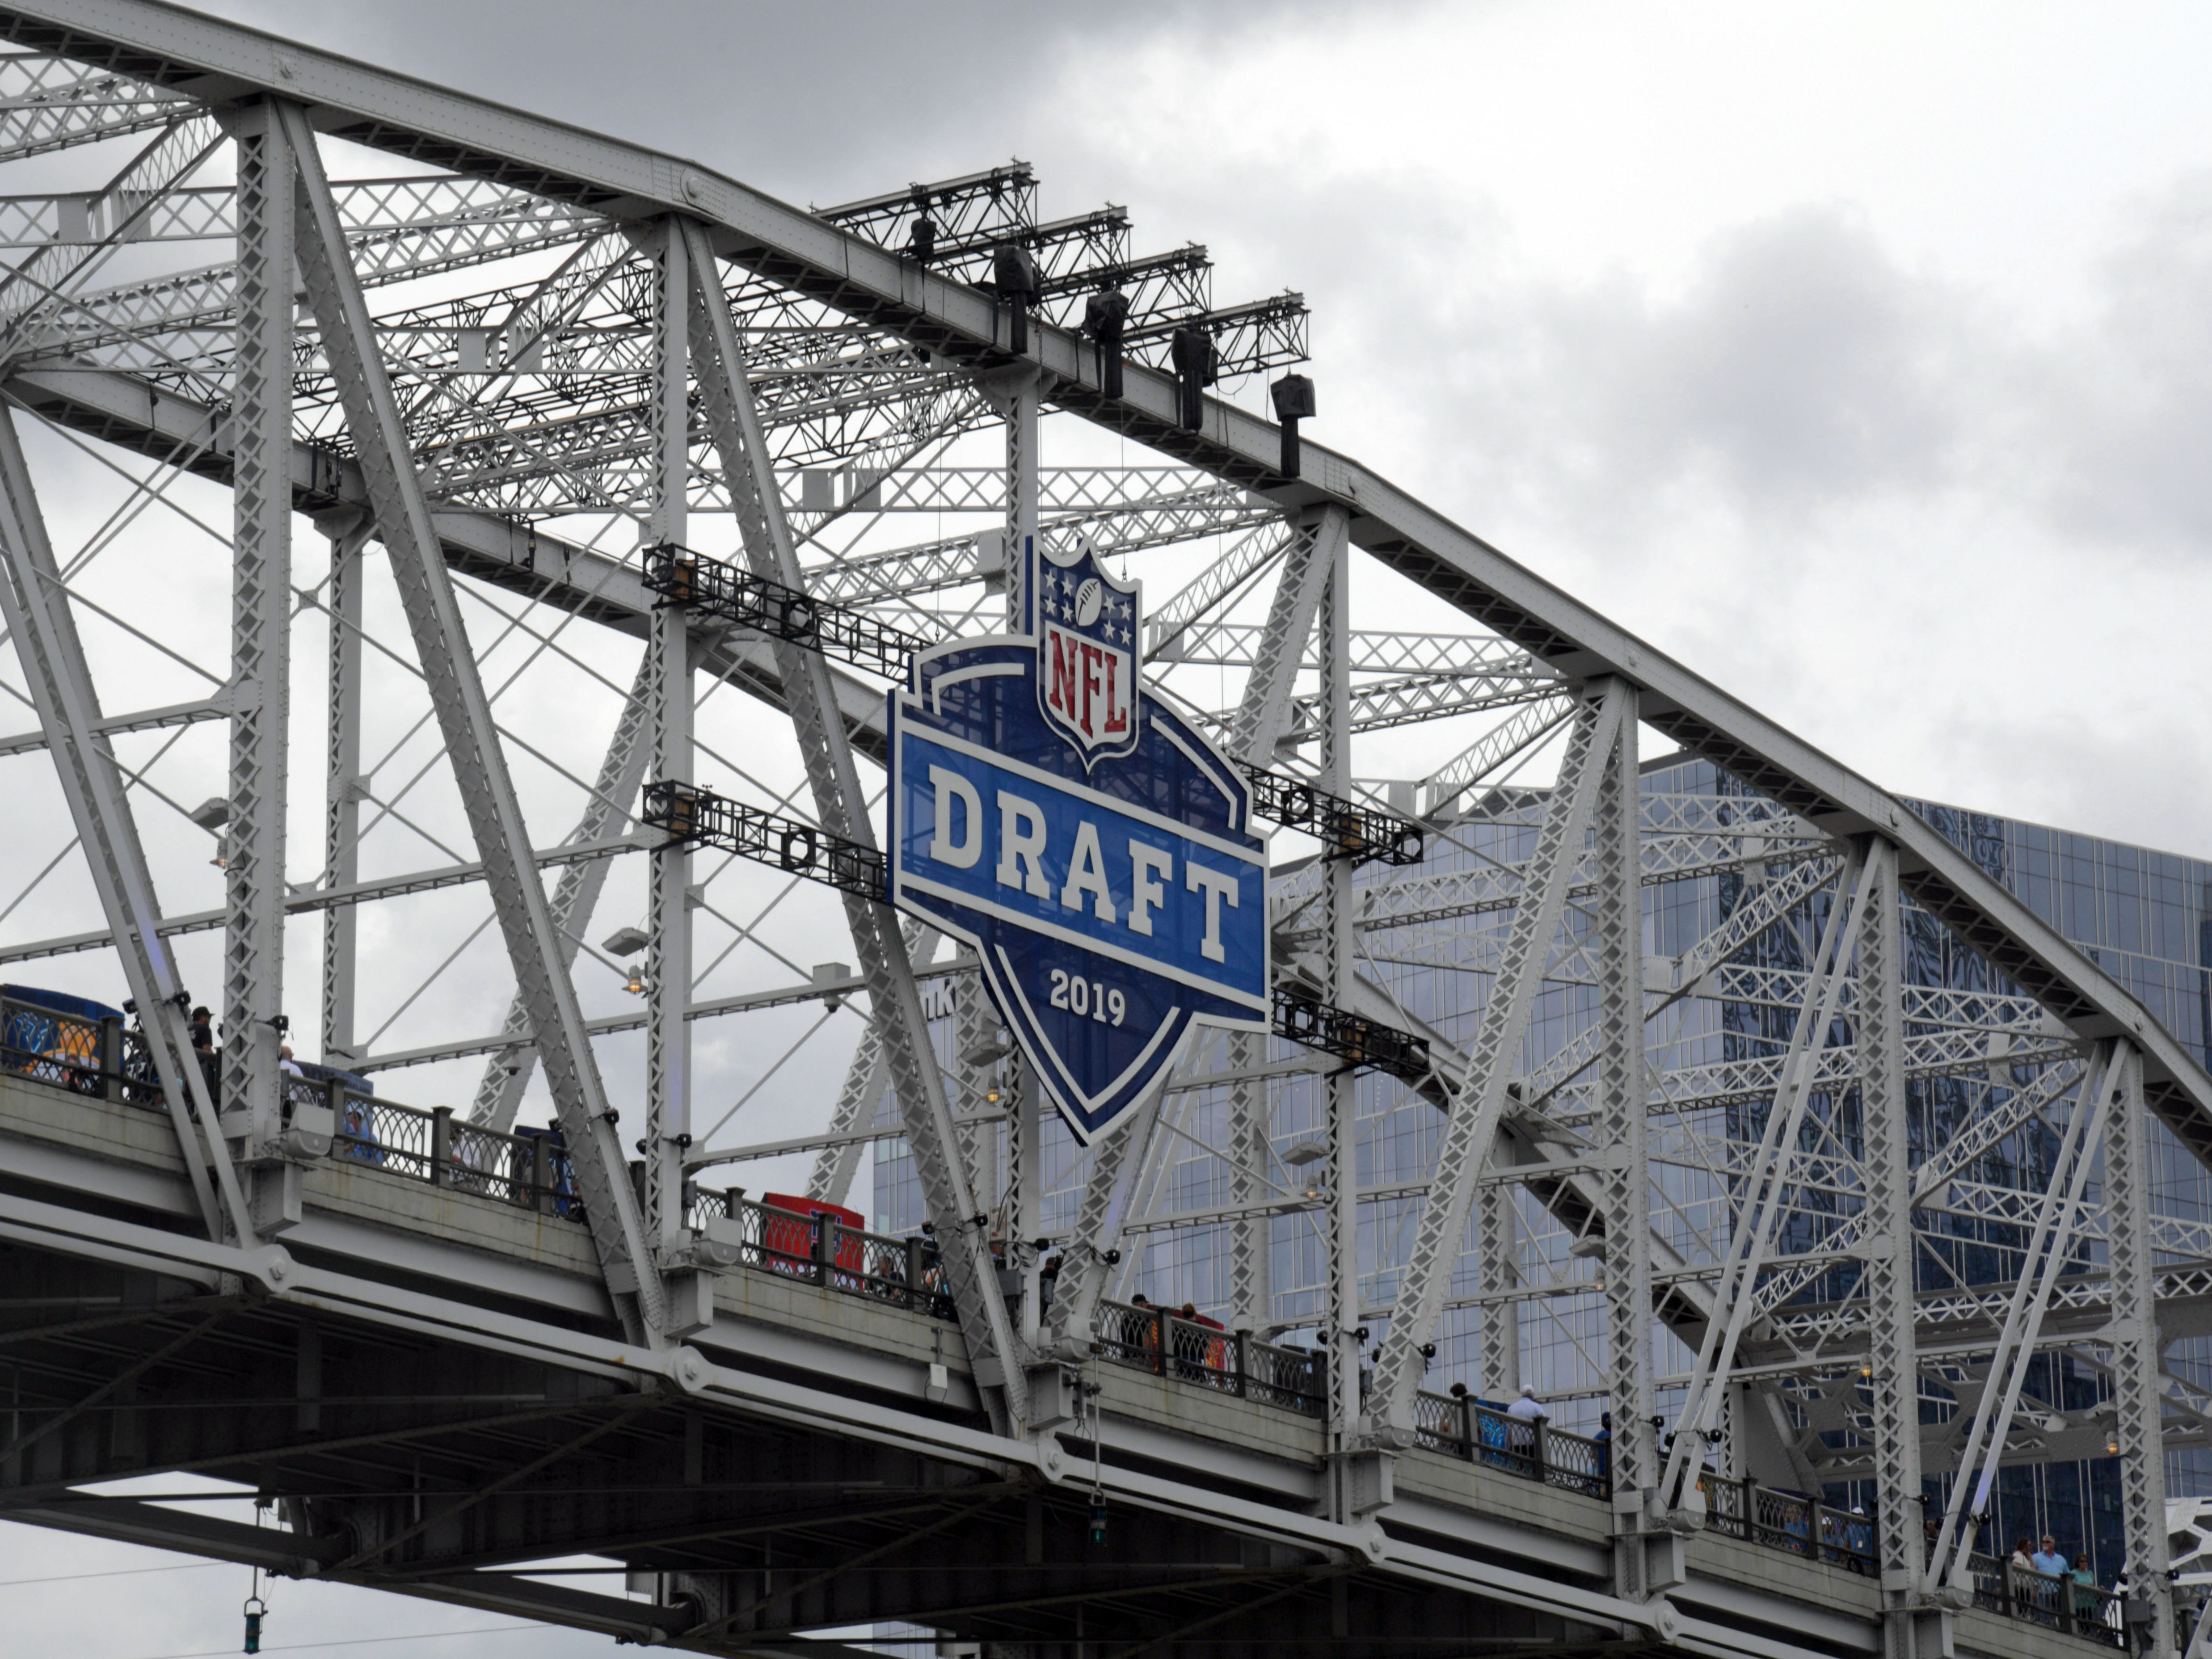 An earlier caption misidentified the name of the bridge shown in this photo. It is the John Seigenthaler Pedestrian Bridge. The John Seigenthaler Pedestrian Bridge is seen with the NFL Draft logo prior to the first round of the 2019 NFL draft.